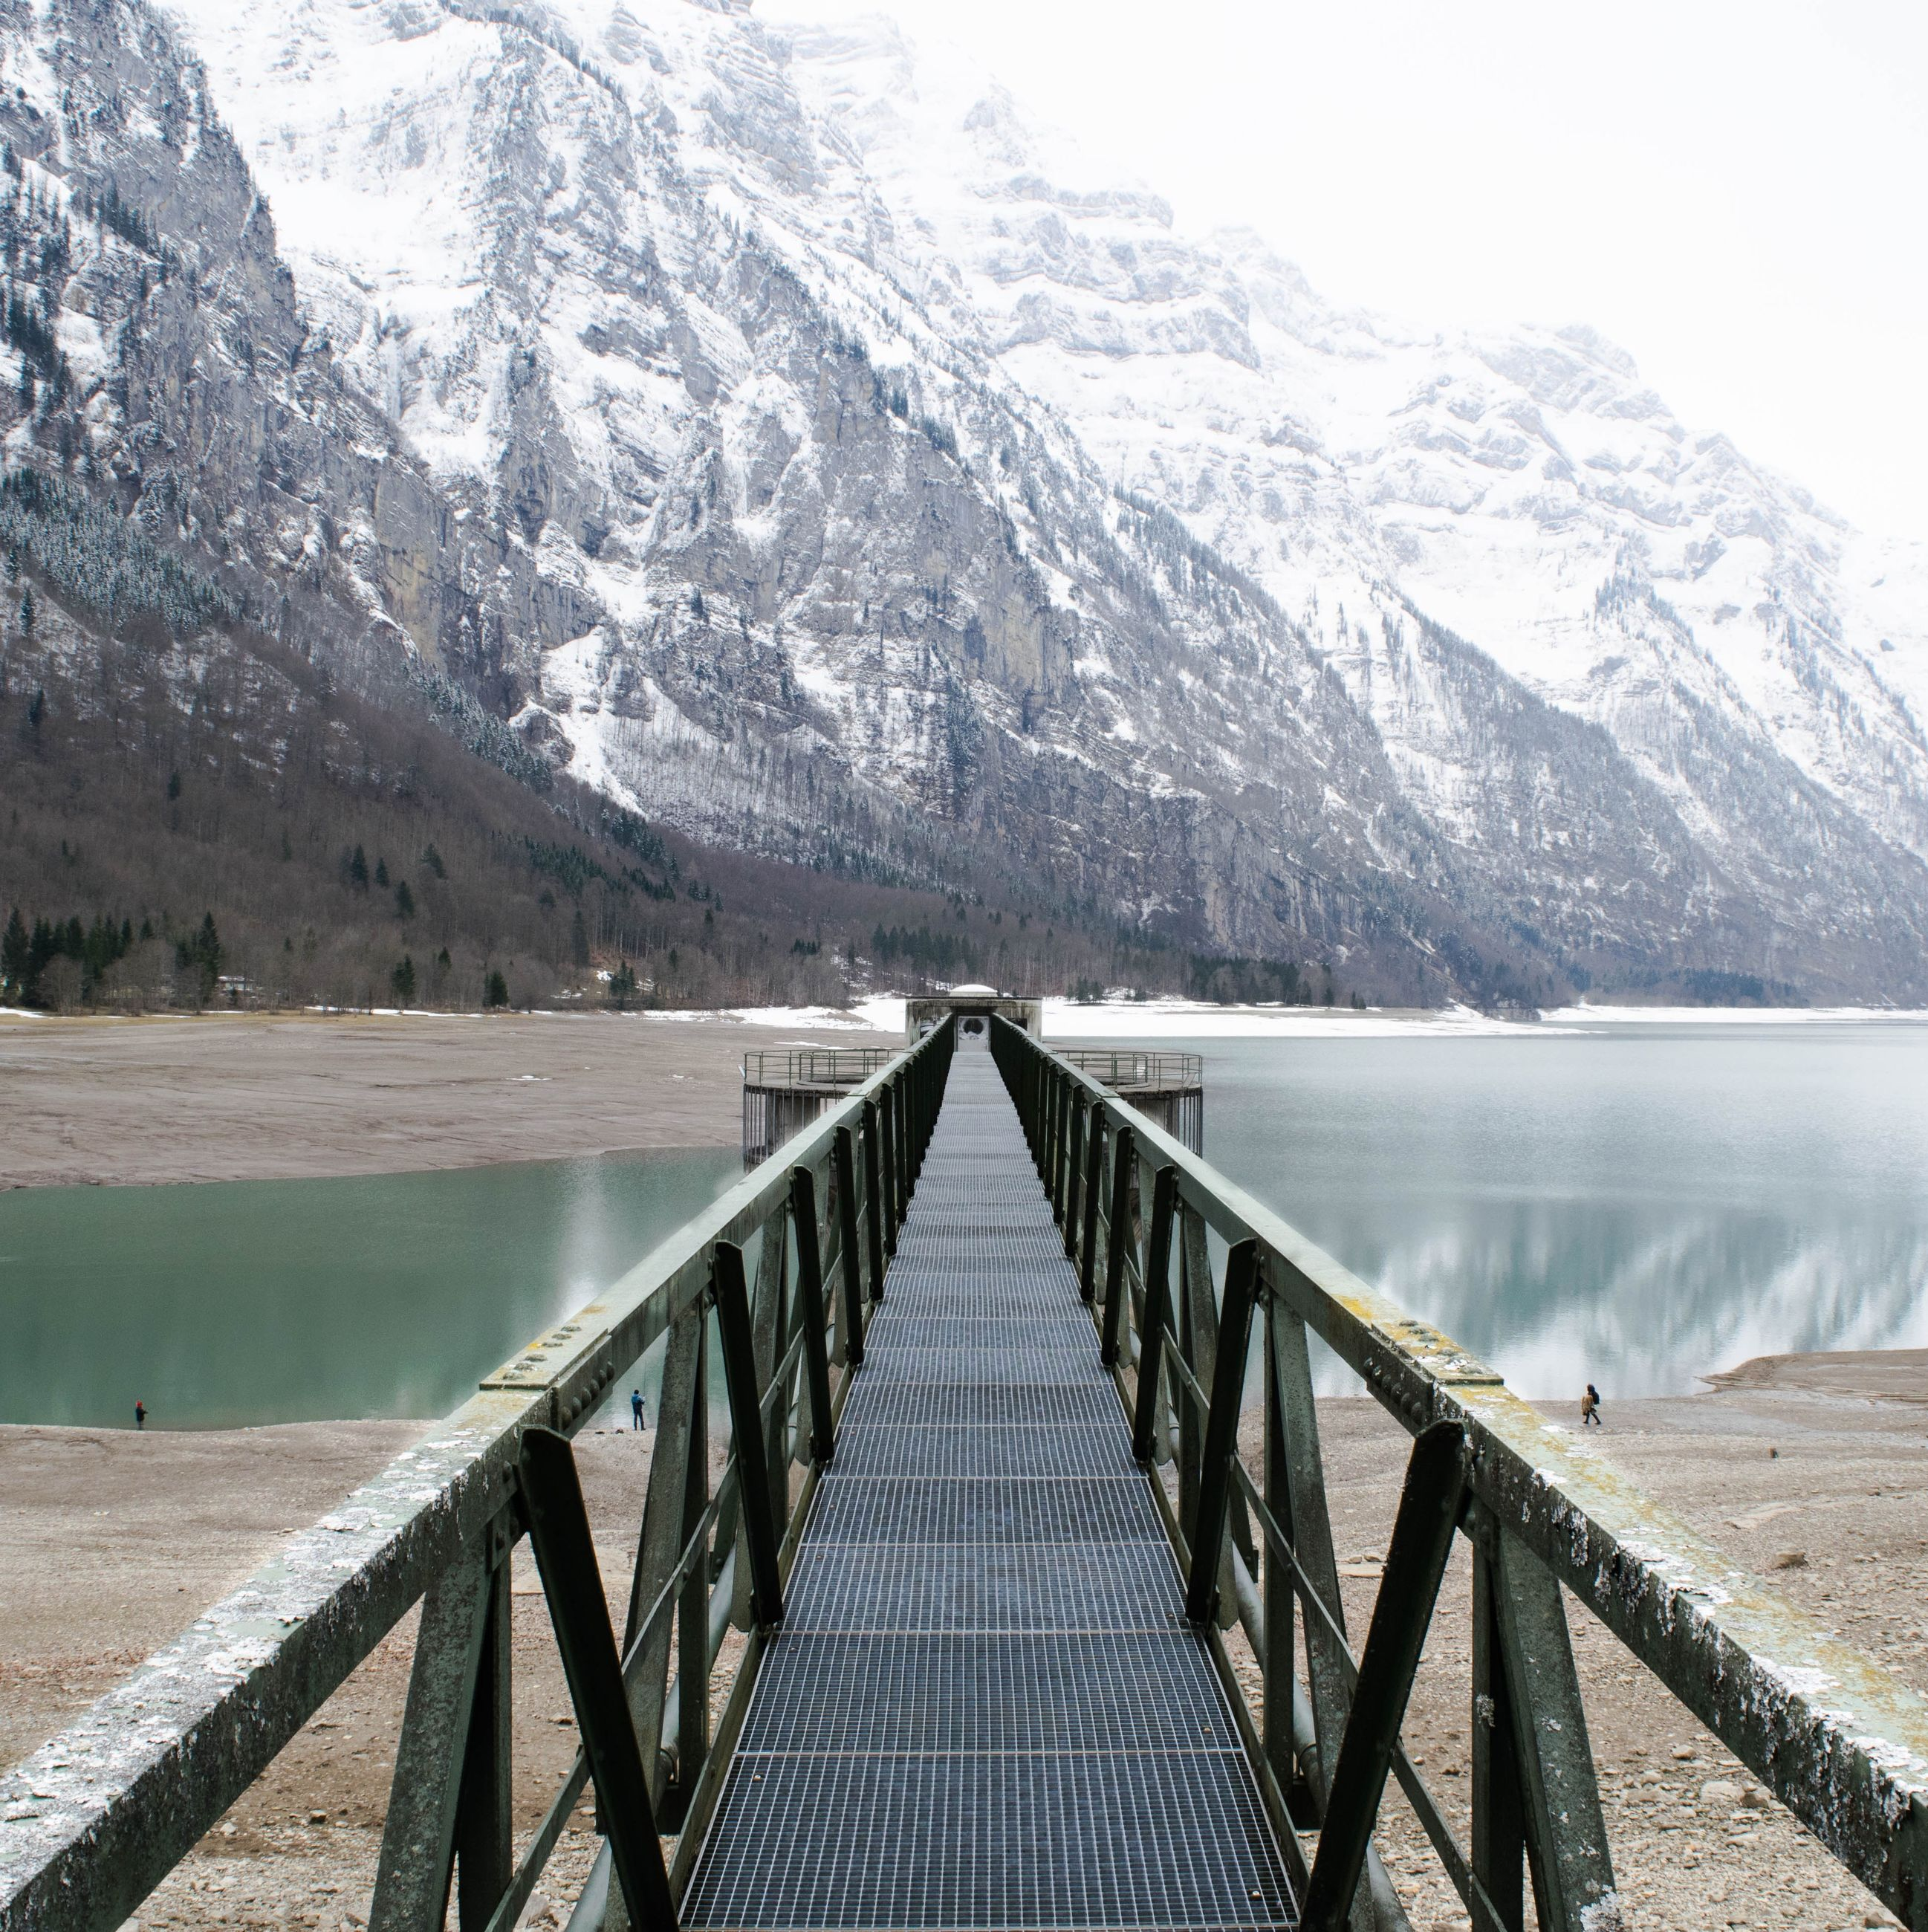 mountain, water, the way forward, railing, diminishing perspective, mountain range, tranquil scene, tranquility, scenics, winter, lake, beauty in nature, sky, cold temperature, nature, snow, vanishing point, river, built structure, season